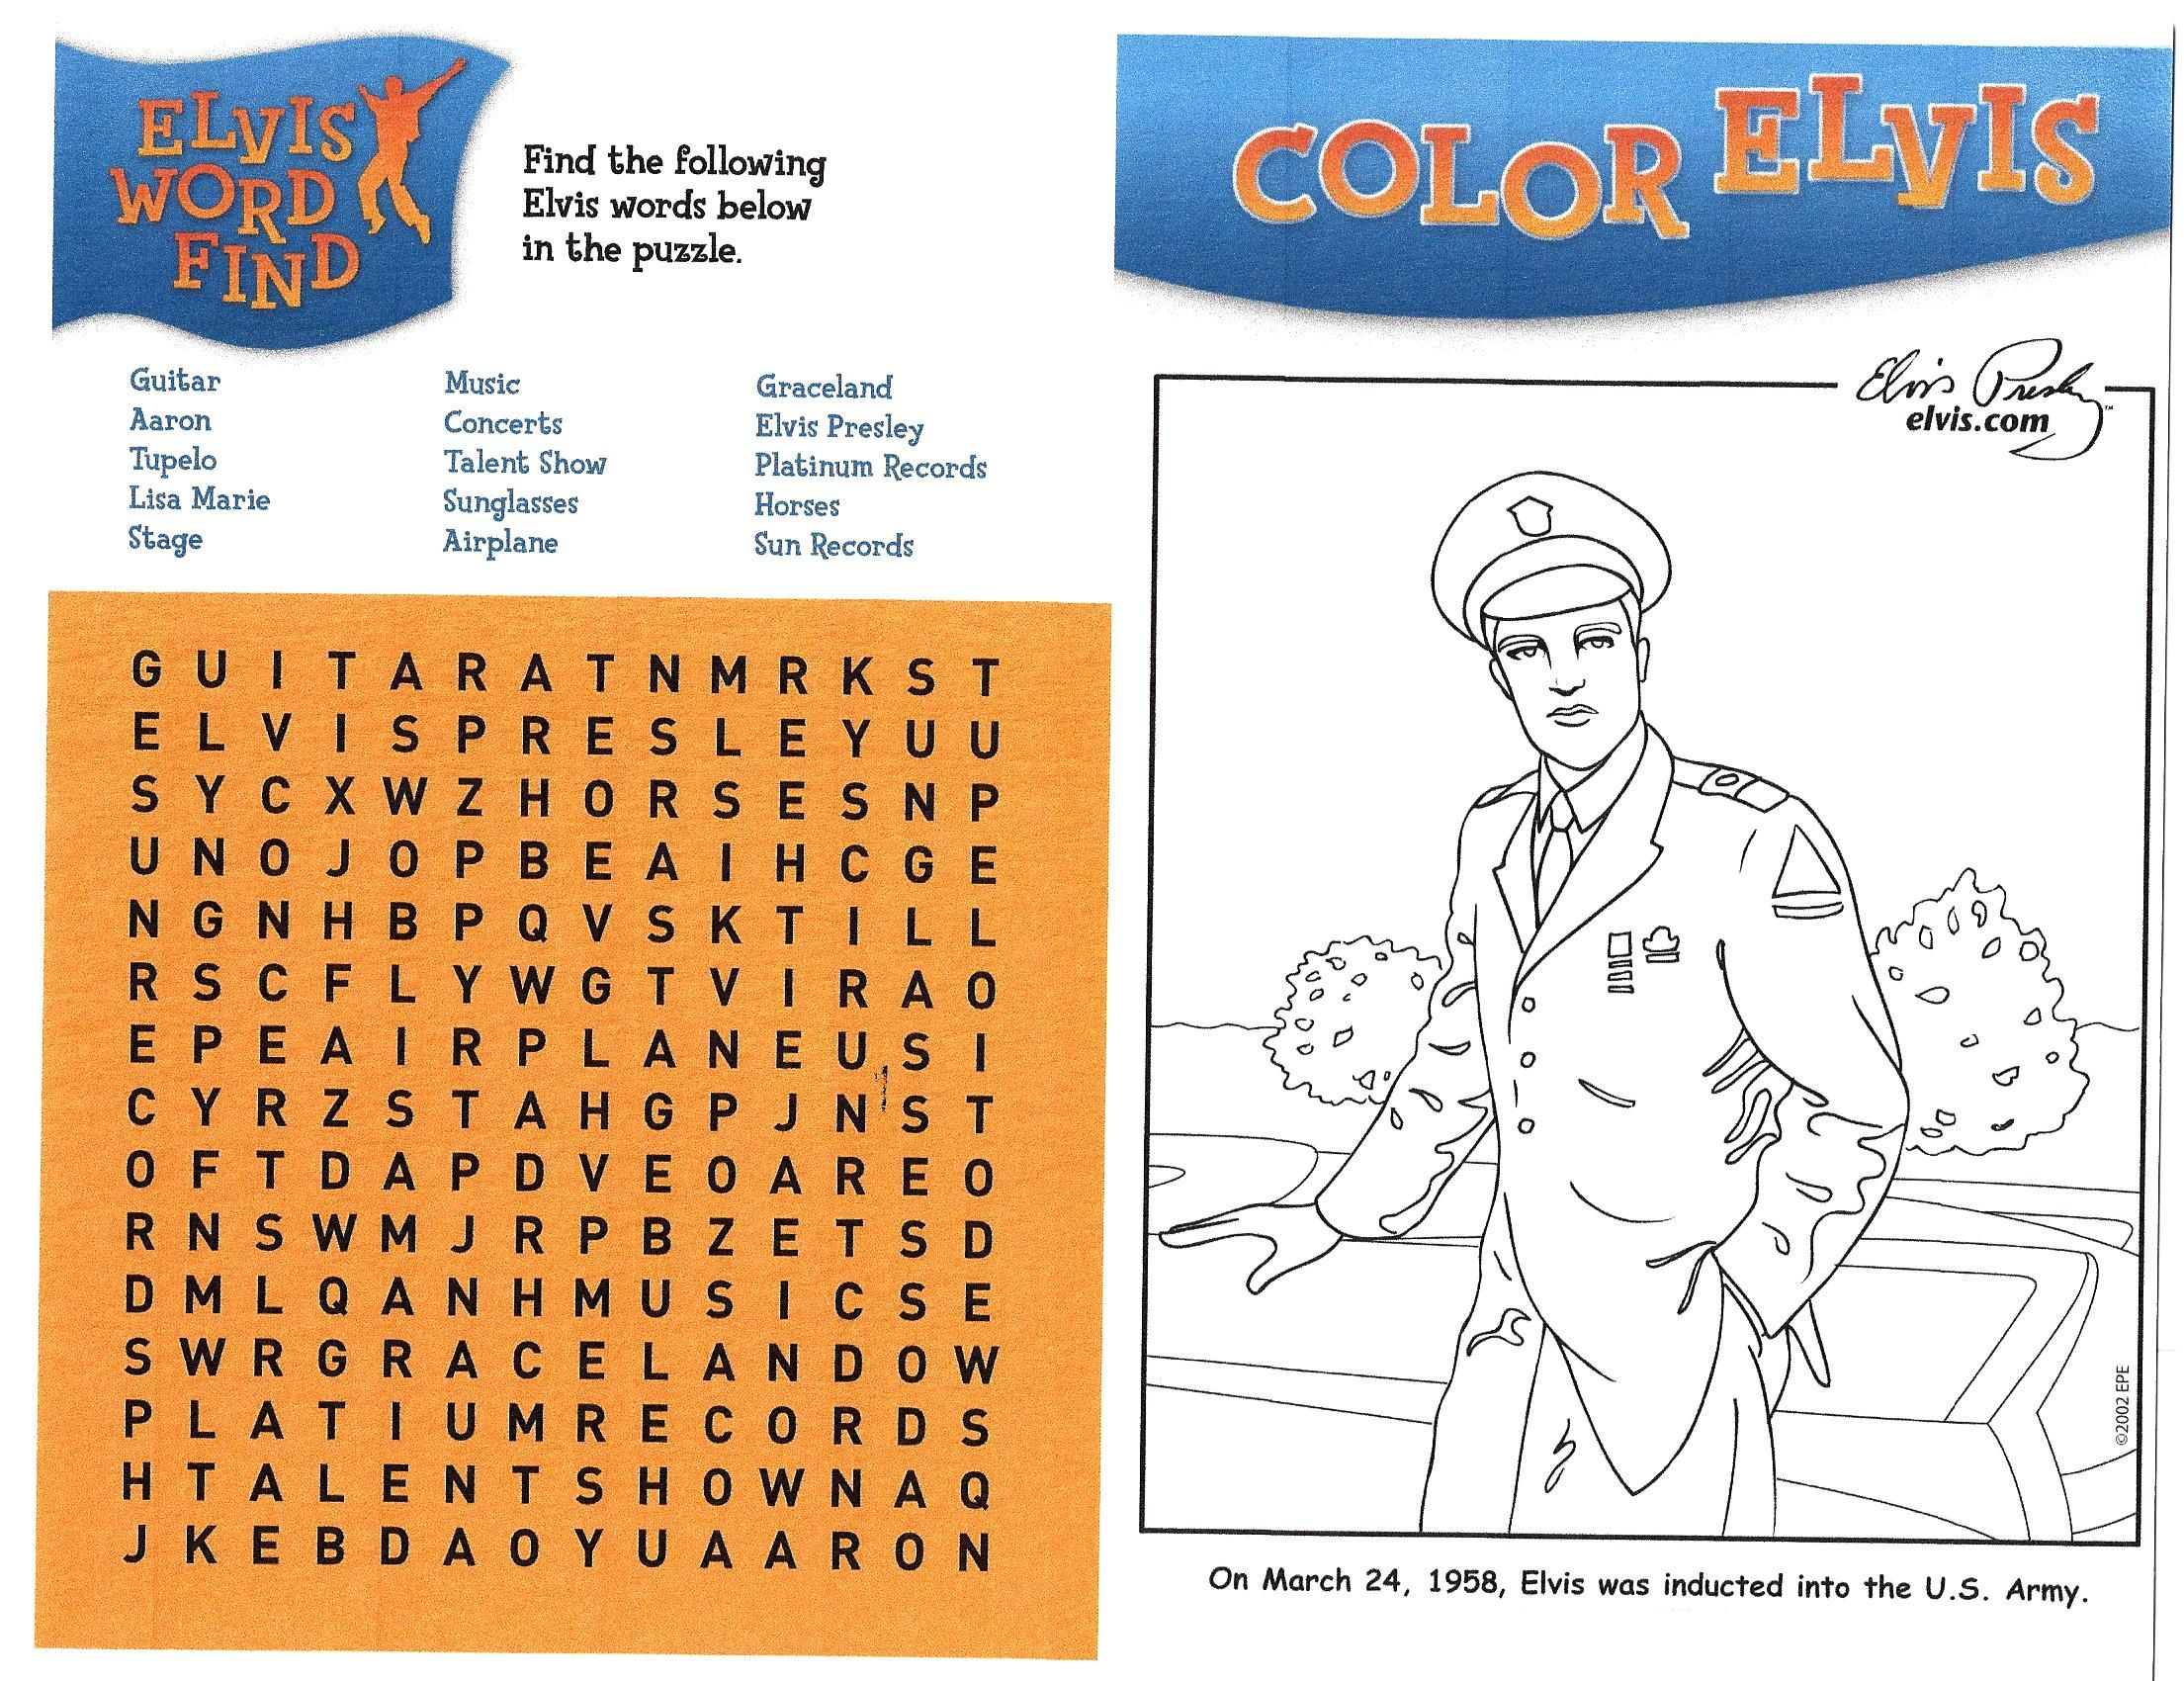 Color Elvis And Elvis Word Search K 5 Visual Art And